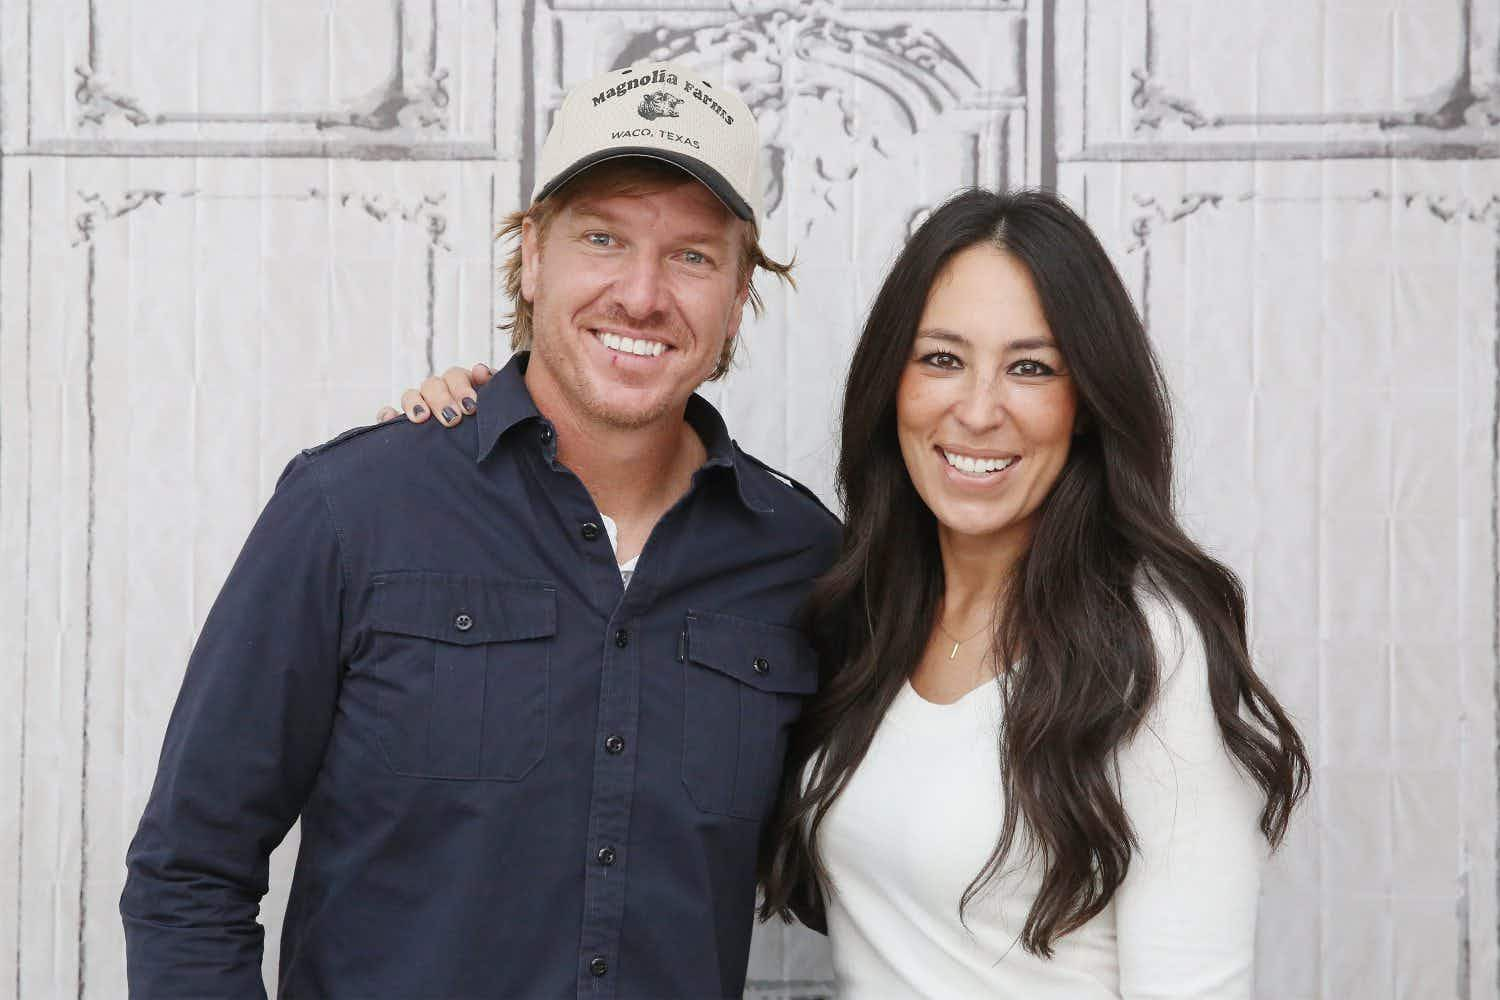 'Fixer Upper' stars Chip and Joanna Gaines are opening a coffee shop and have bought a castle